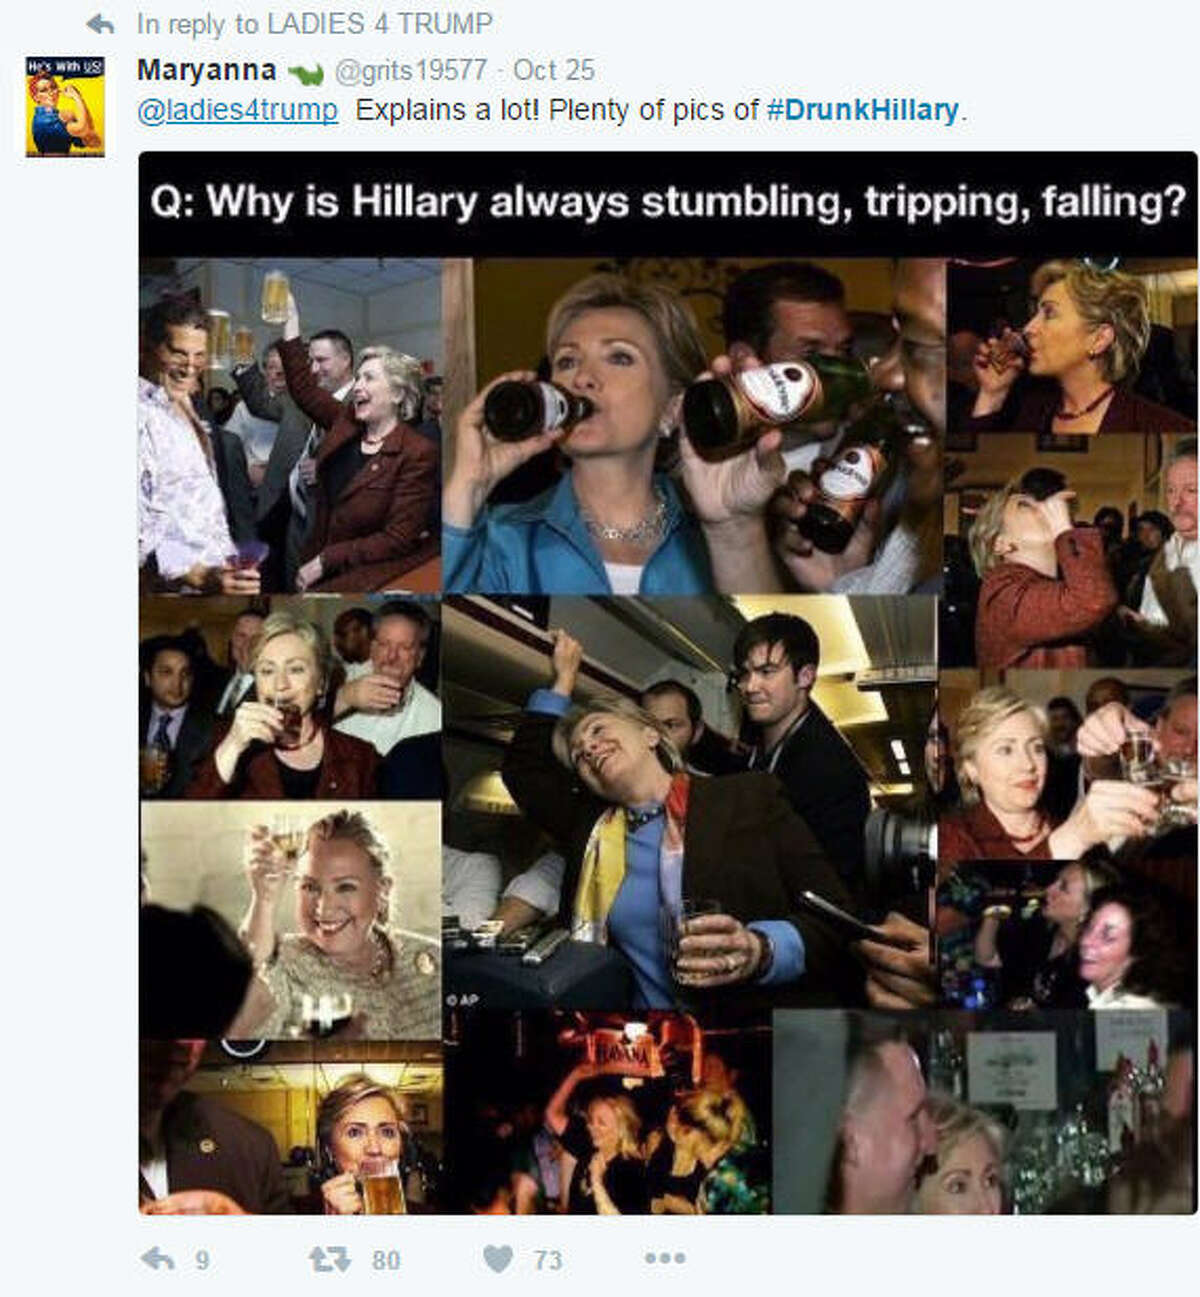 The Twitter hashtag #DrunkHillary, referring to presidential candidate Hillary Clinton, began circulating in late October 2016, particularly among supporters of her opponent, Donald Trump. (Photo: Via @grits19577 on Twitter)